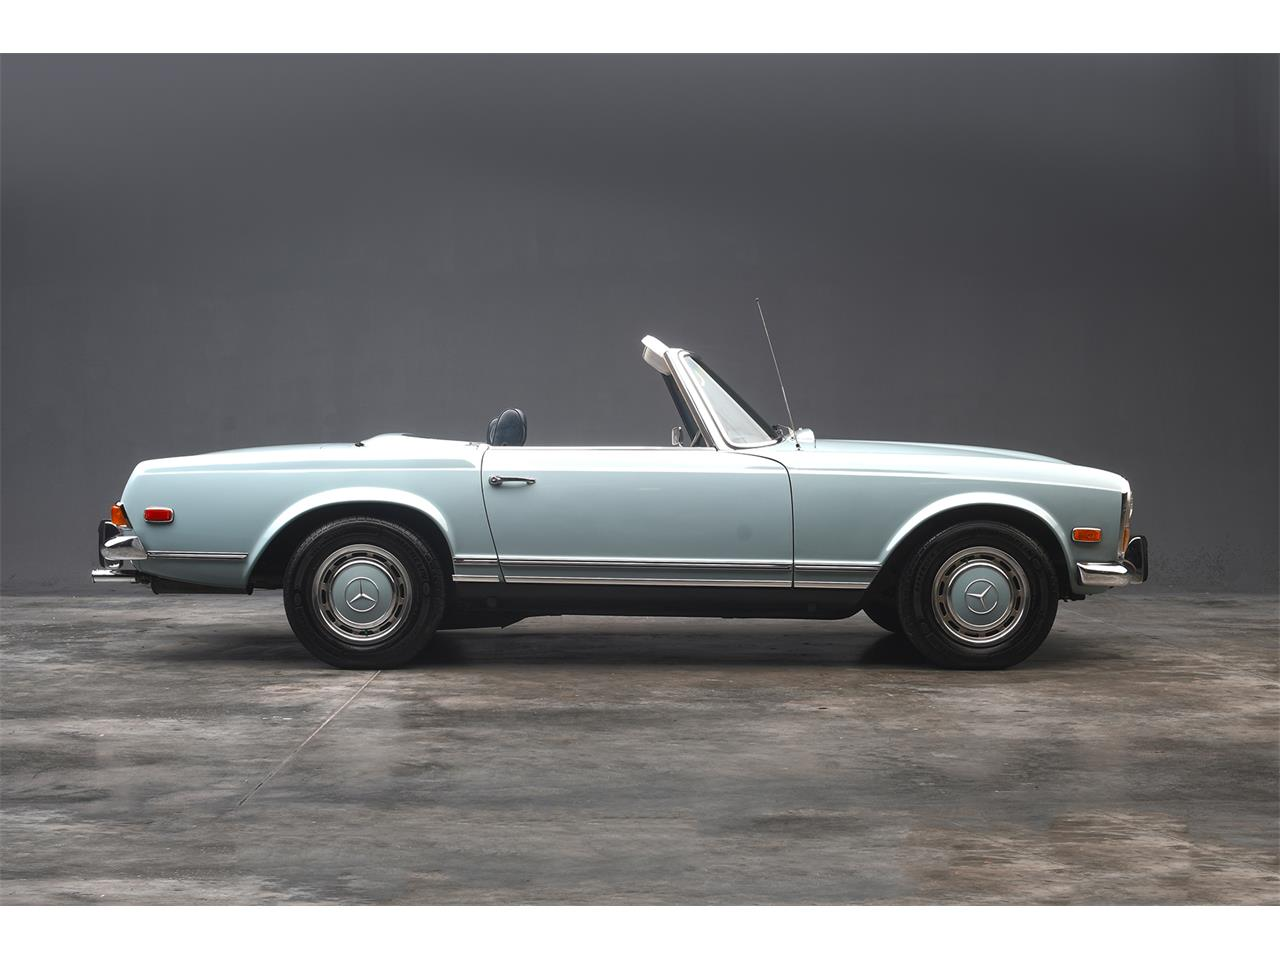 Large Picture of 1970 Mercedes-Benz 280SL located in West Palm Beach Florida - $84,900.00 Offered by a Private Seller - PKH5